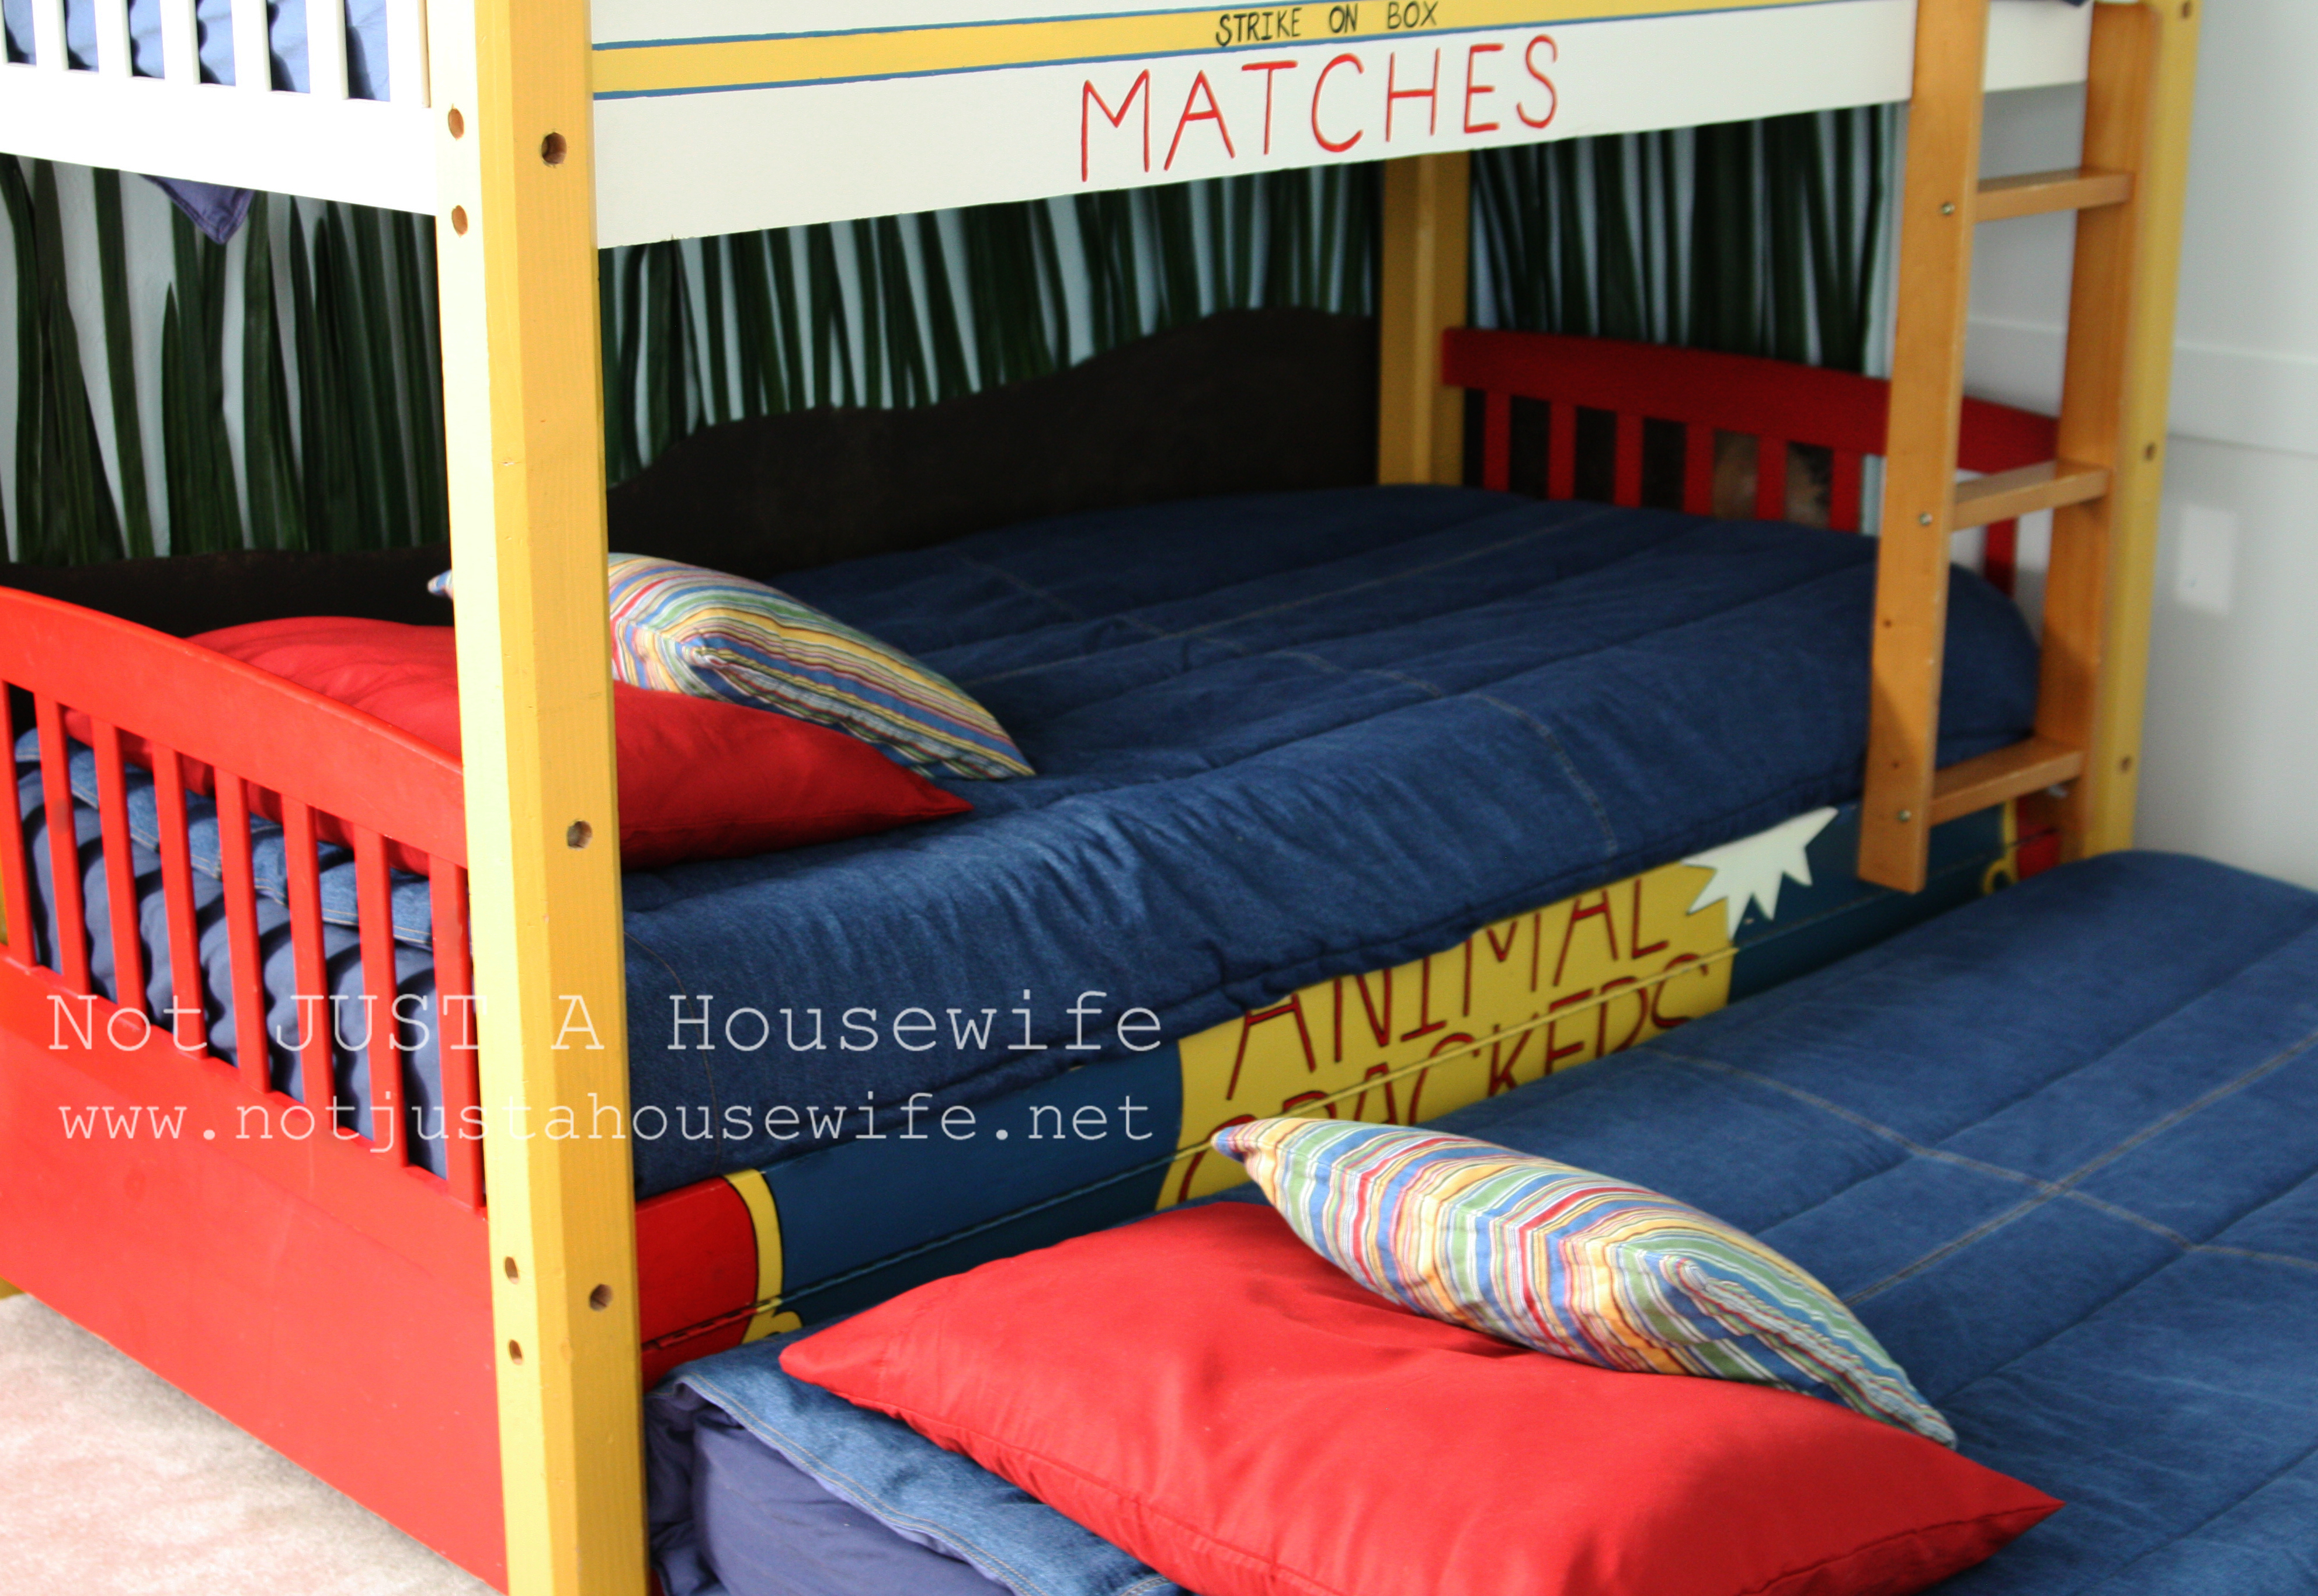 Kids Bedroom Not Just A Housewife